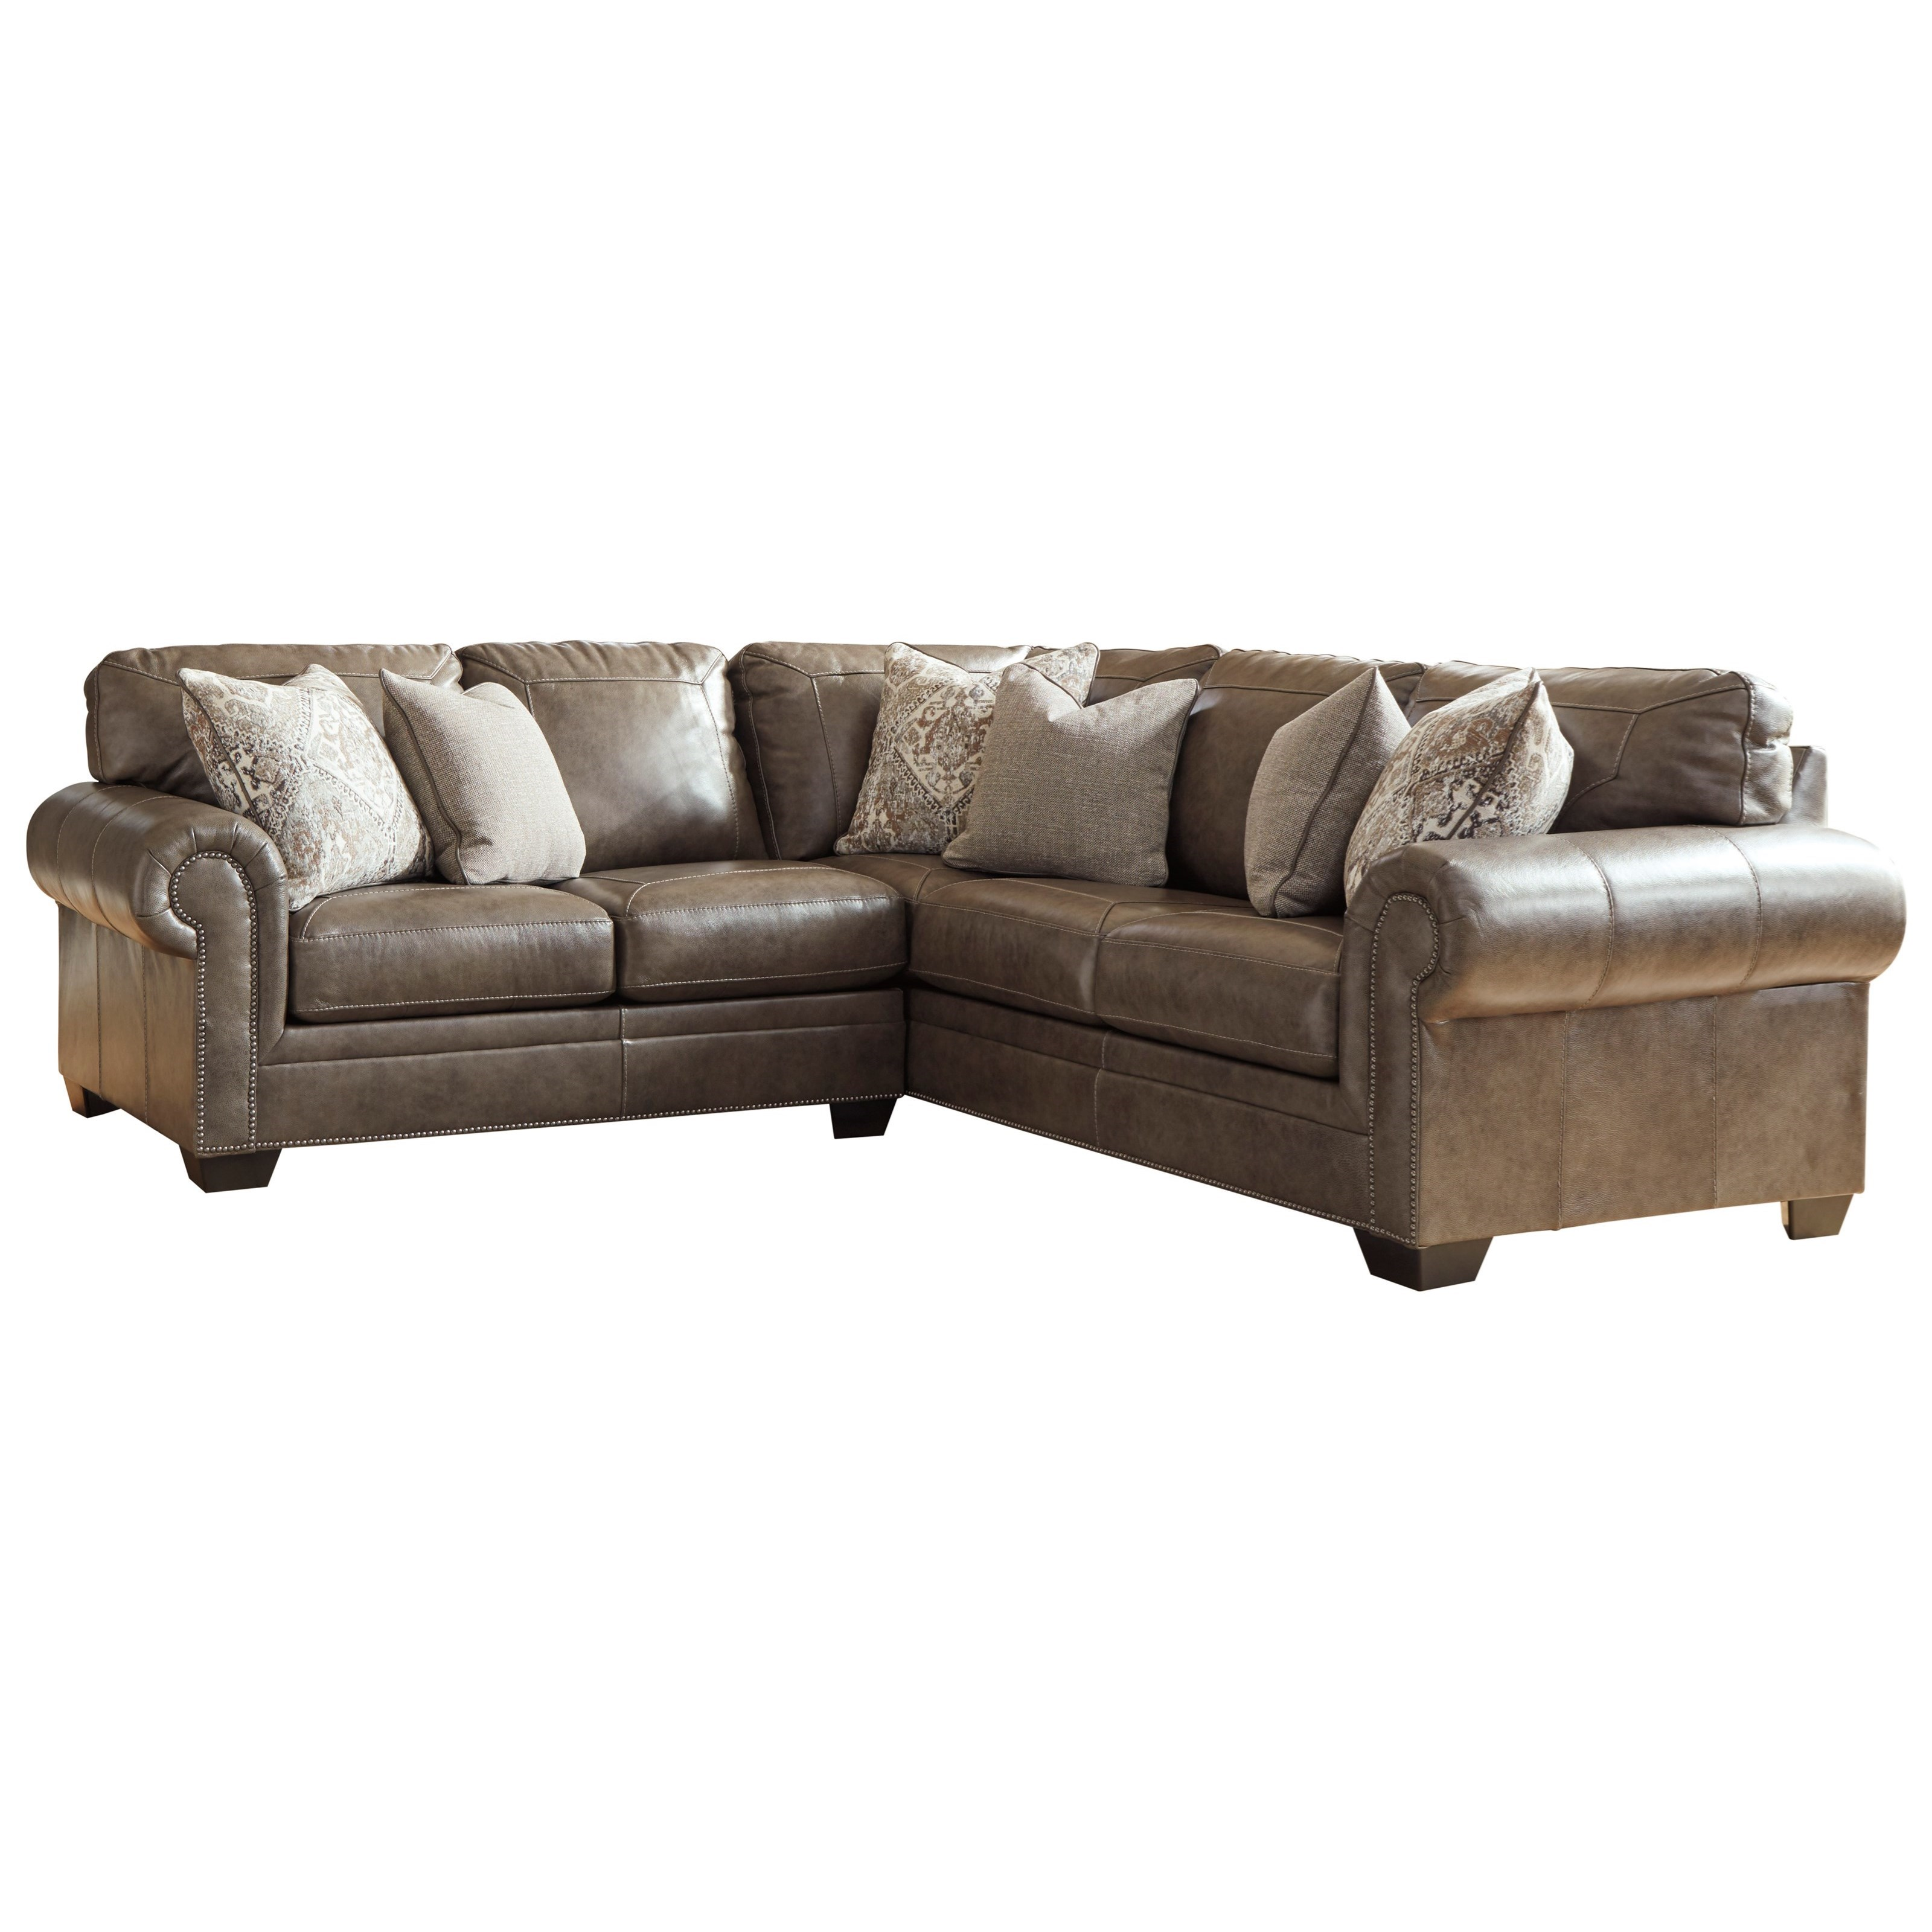 Roleson 2-Piece Sectional by Ashley (Signature Design) at Johnny Janosik